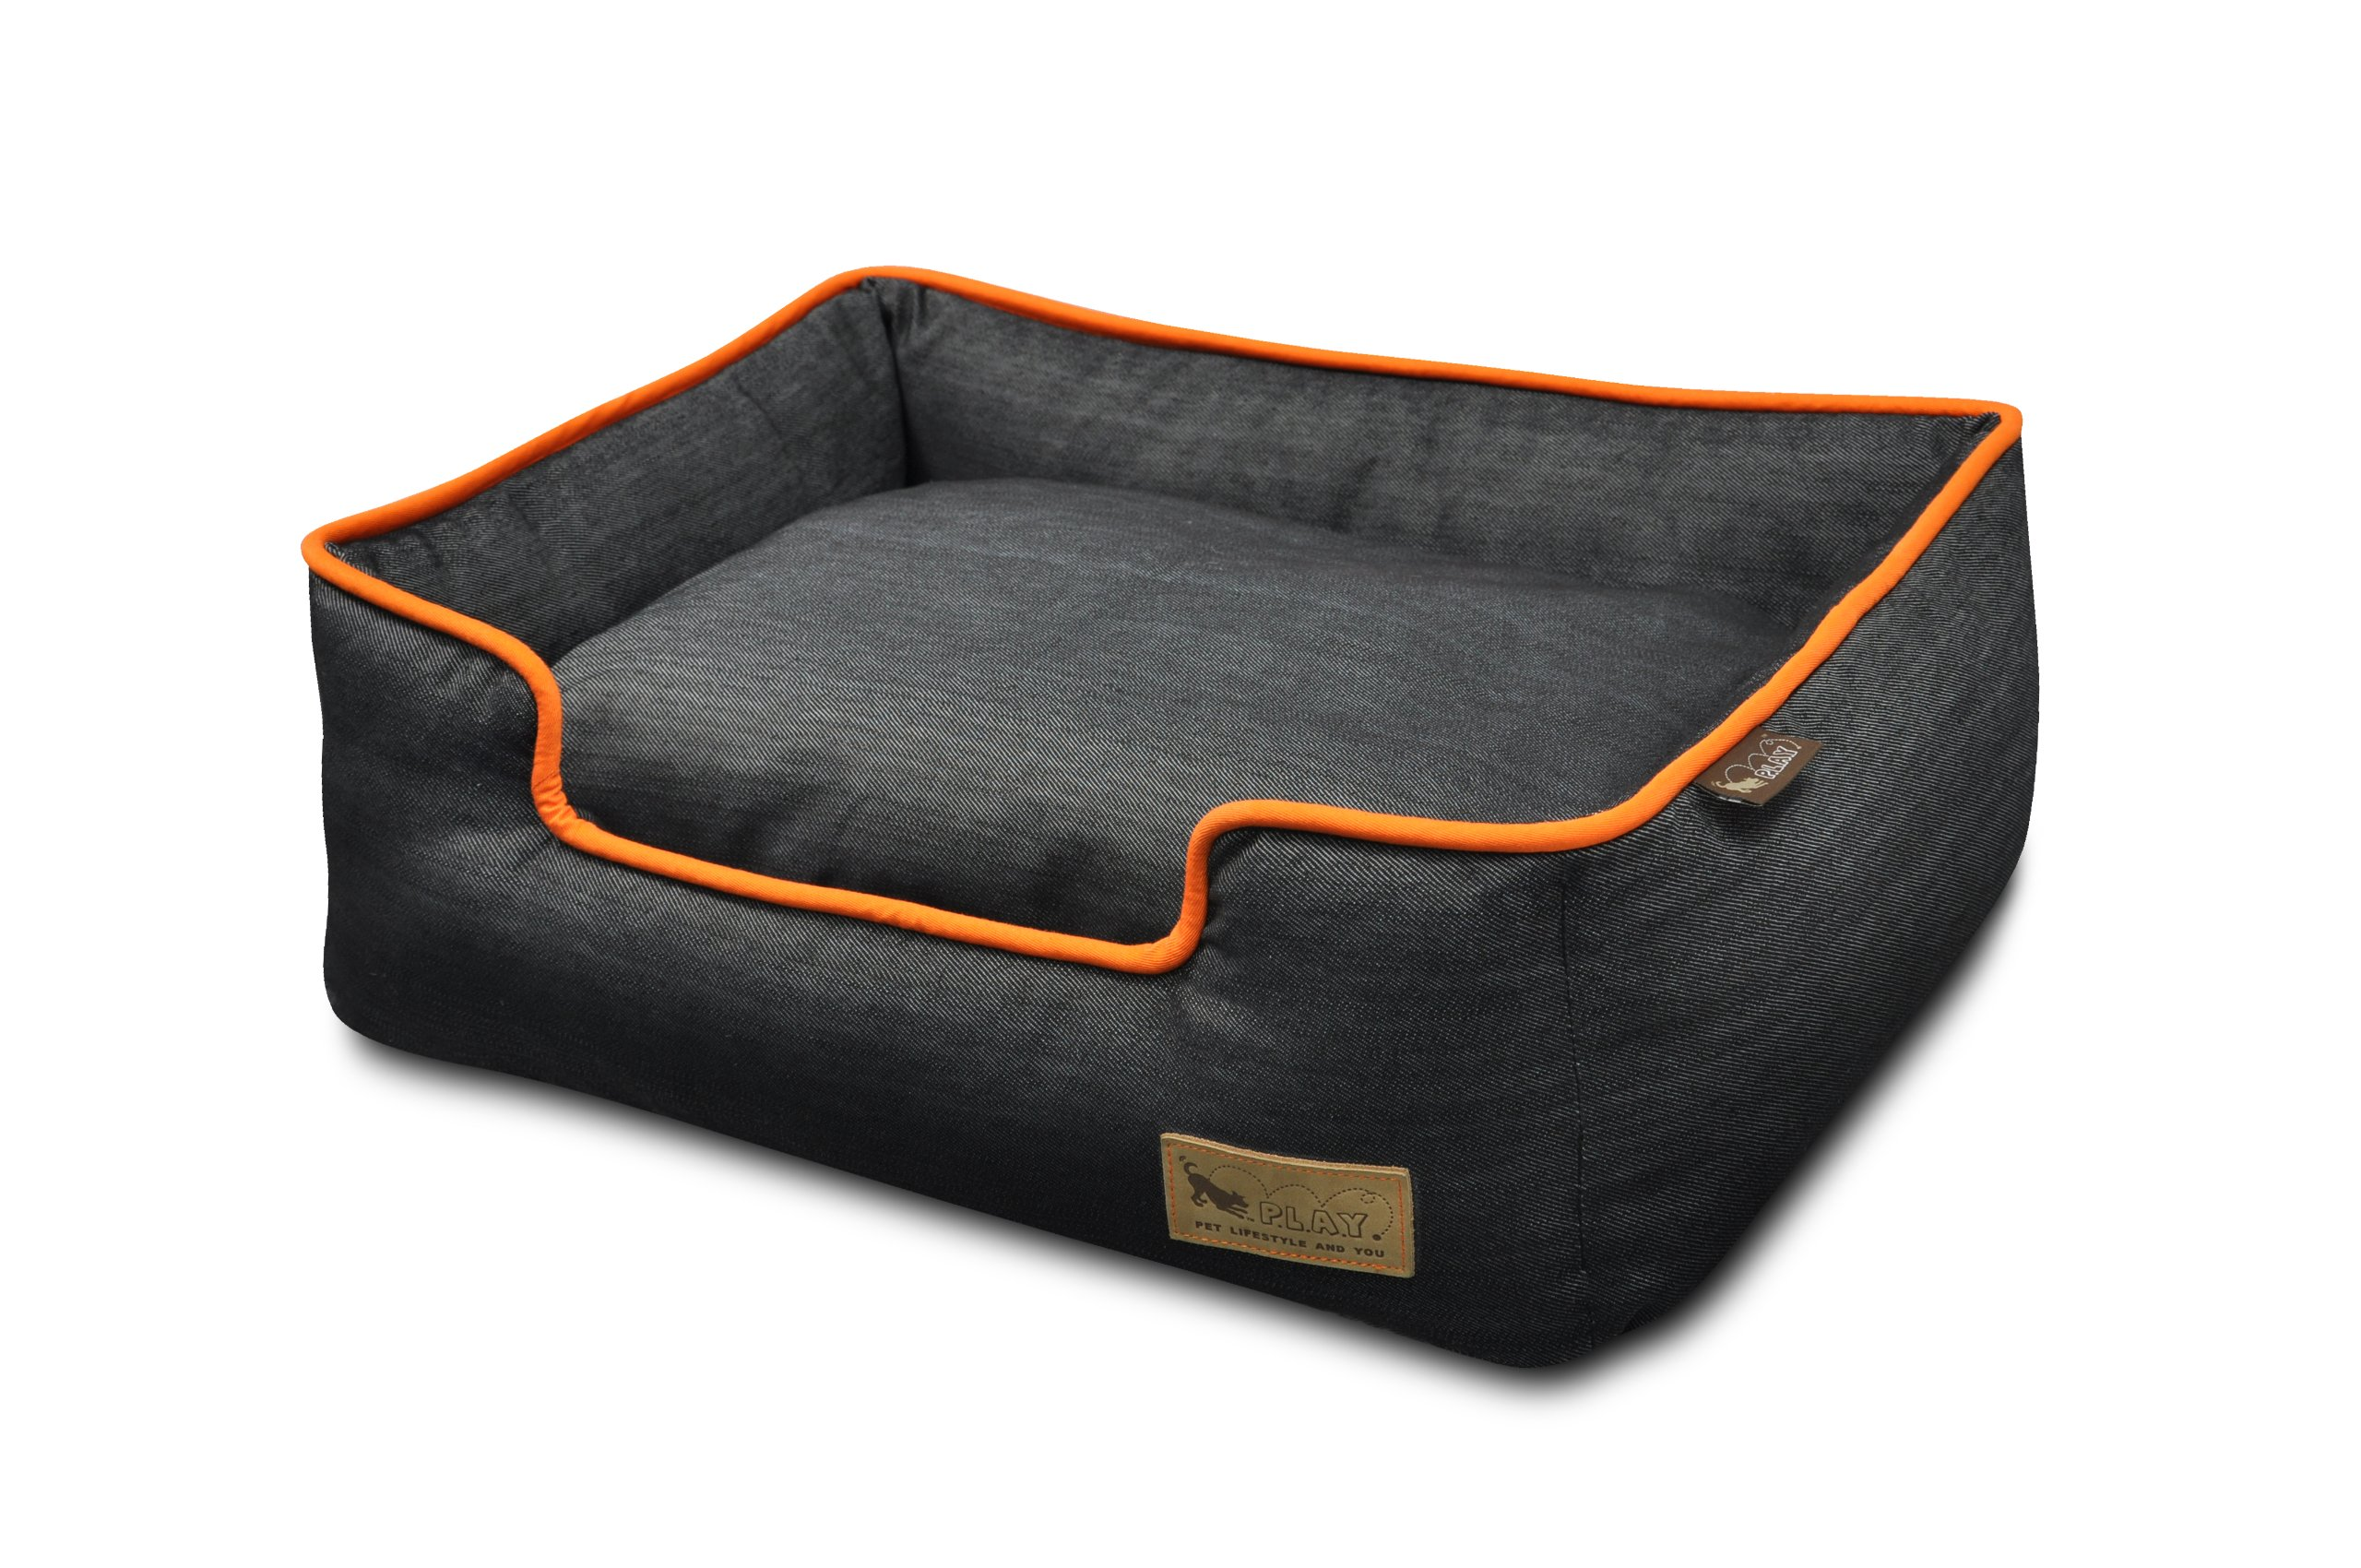 P.L.A.Y. Pet Lifestyle and You Denim Orange Lounge Bed for Dogs, Large